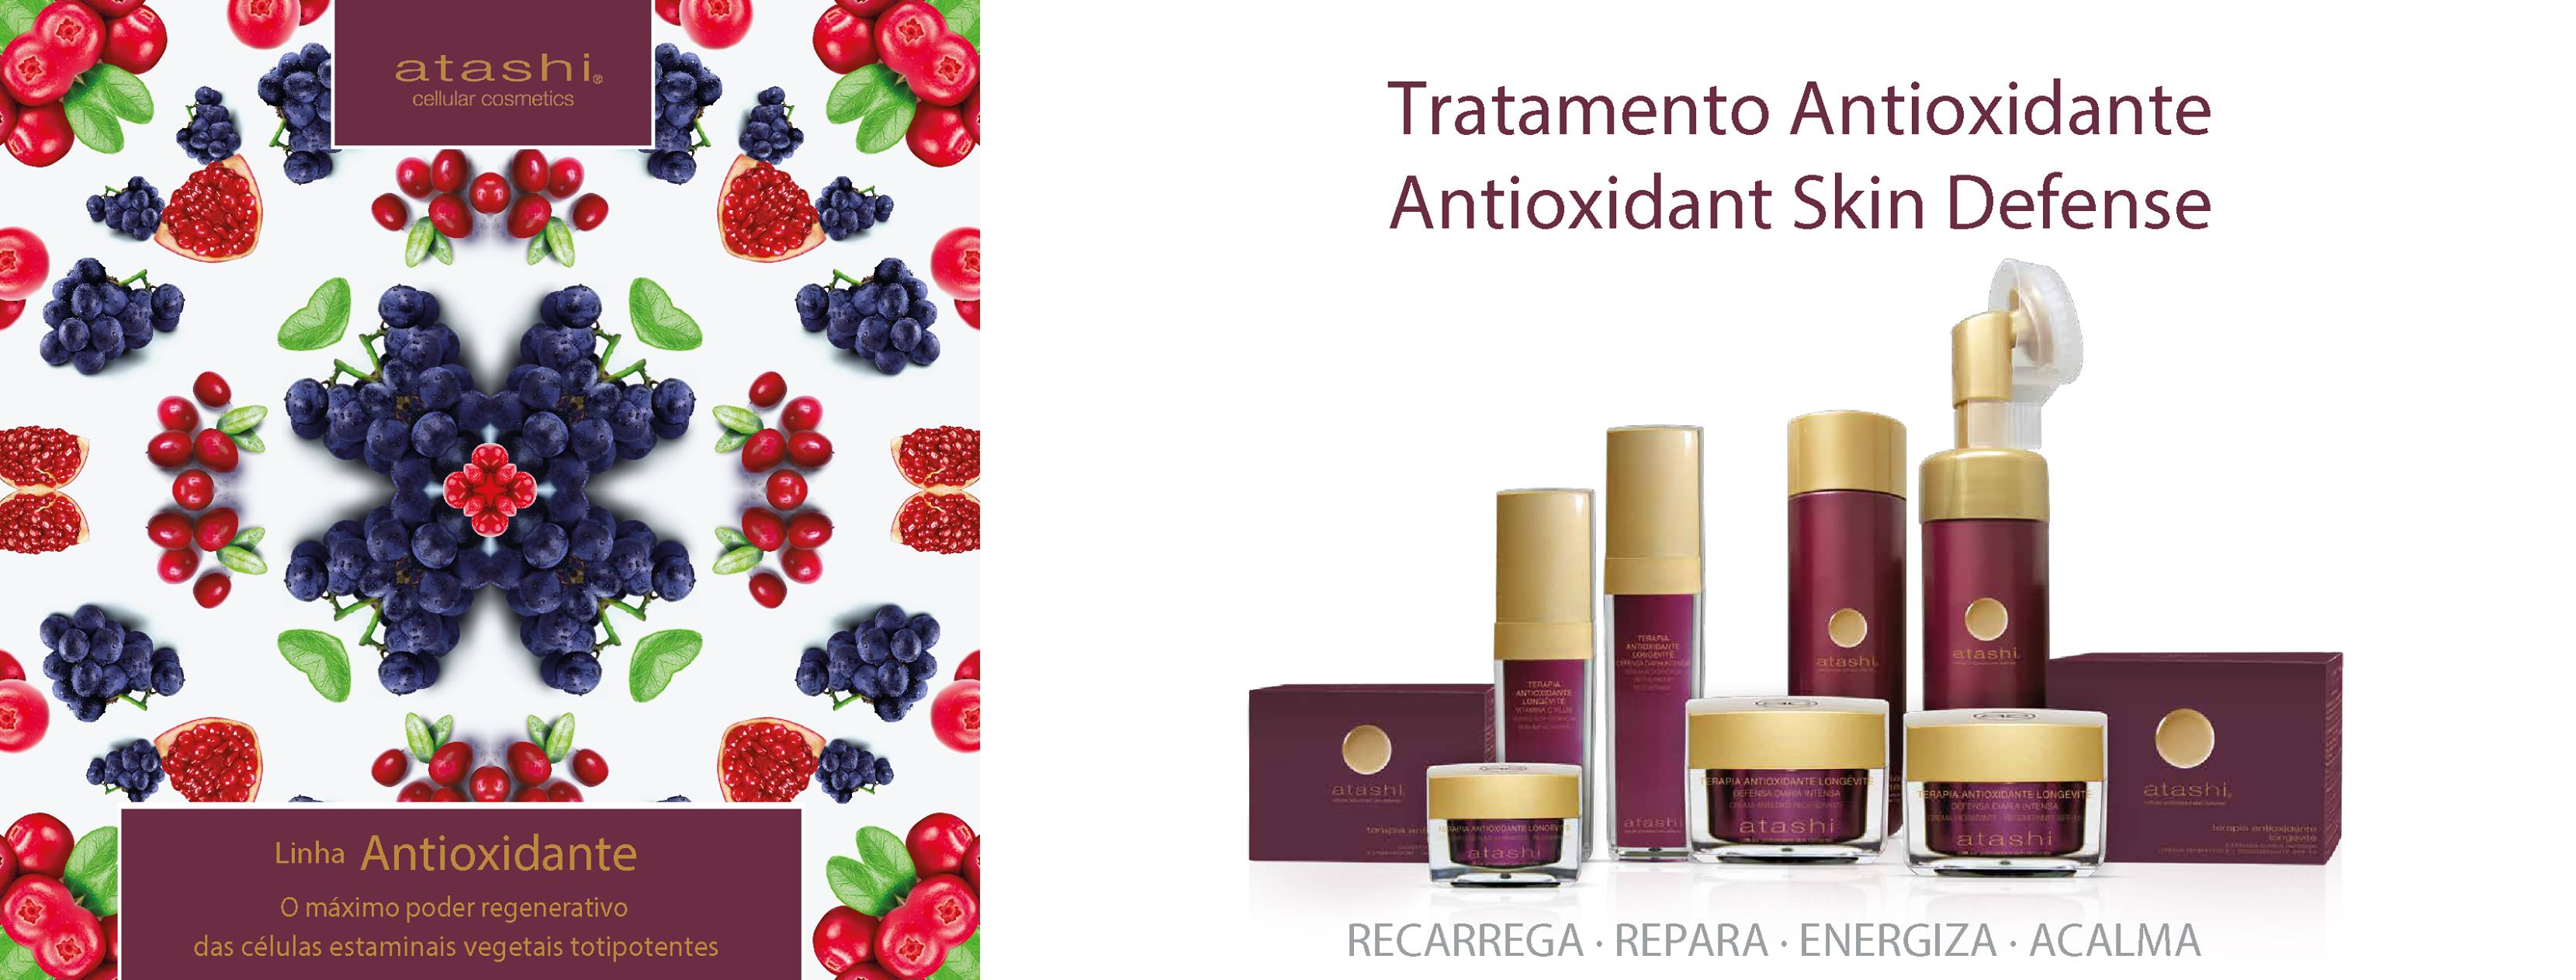 ATASHI ANTIOX SORO VITAMINA C PLUS 30ML